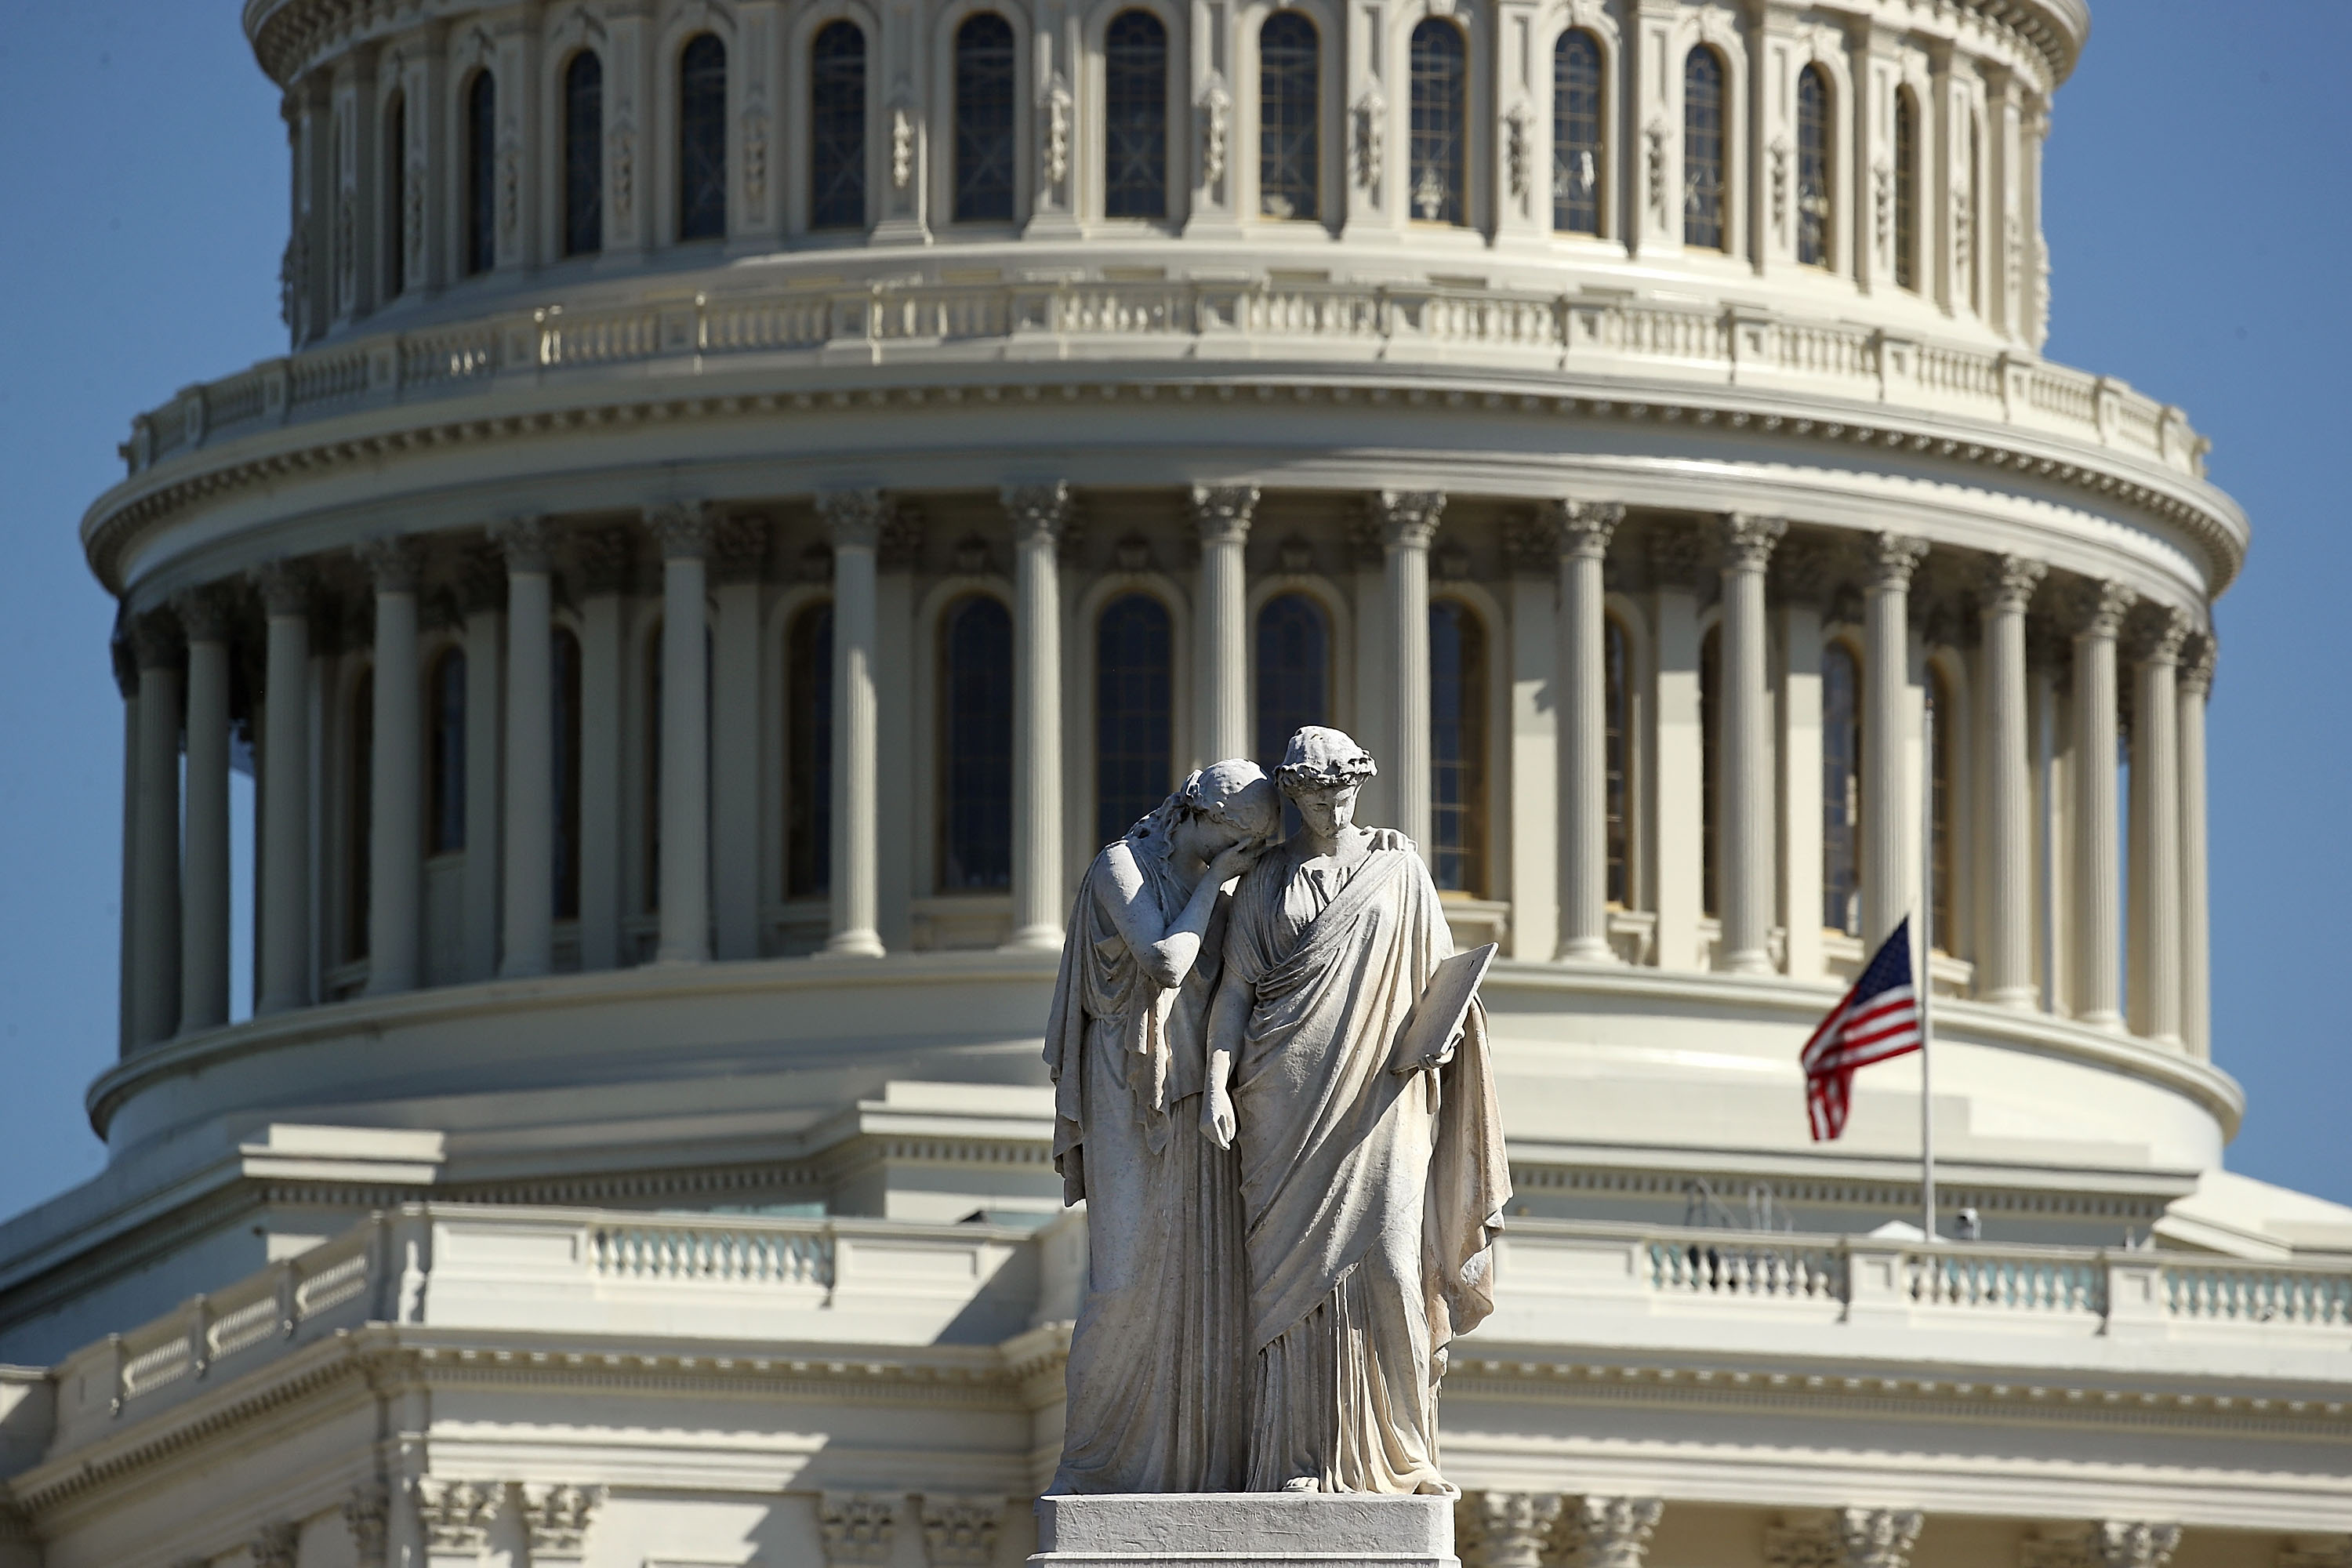 he Peace Monument stands in front of the U.S. Capitol where an American flag flies at half-staff, on October 2, 2017 in Washington, DC.